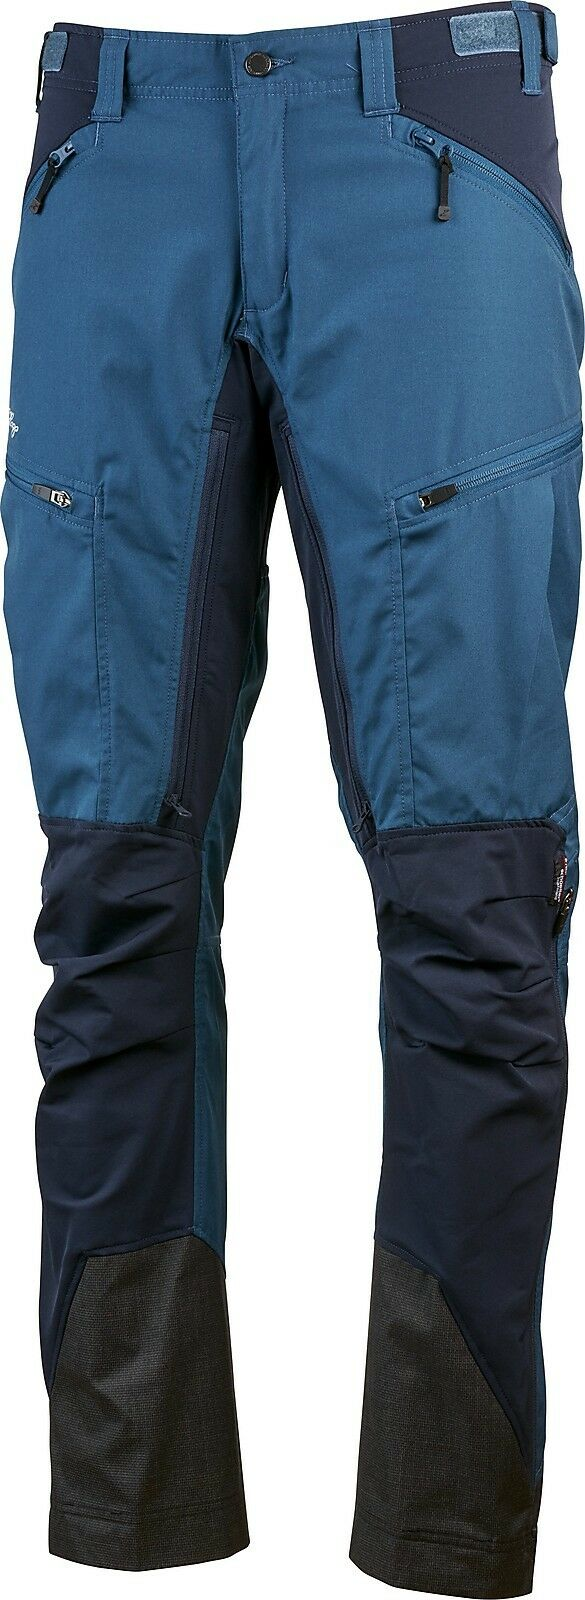 Lundhags Makke Pant Men, Petrol bluee, Elasticated Mens Trekking Pants,  Size 46  there are more brands of high-quality goods